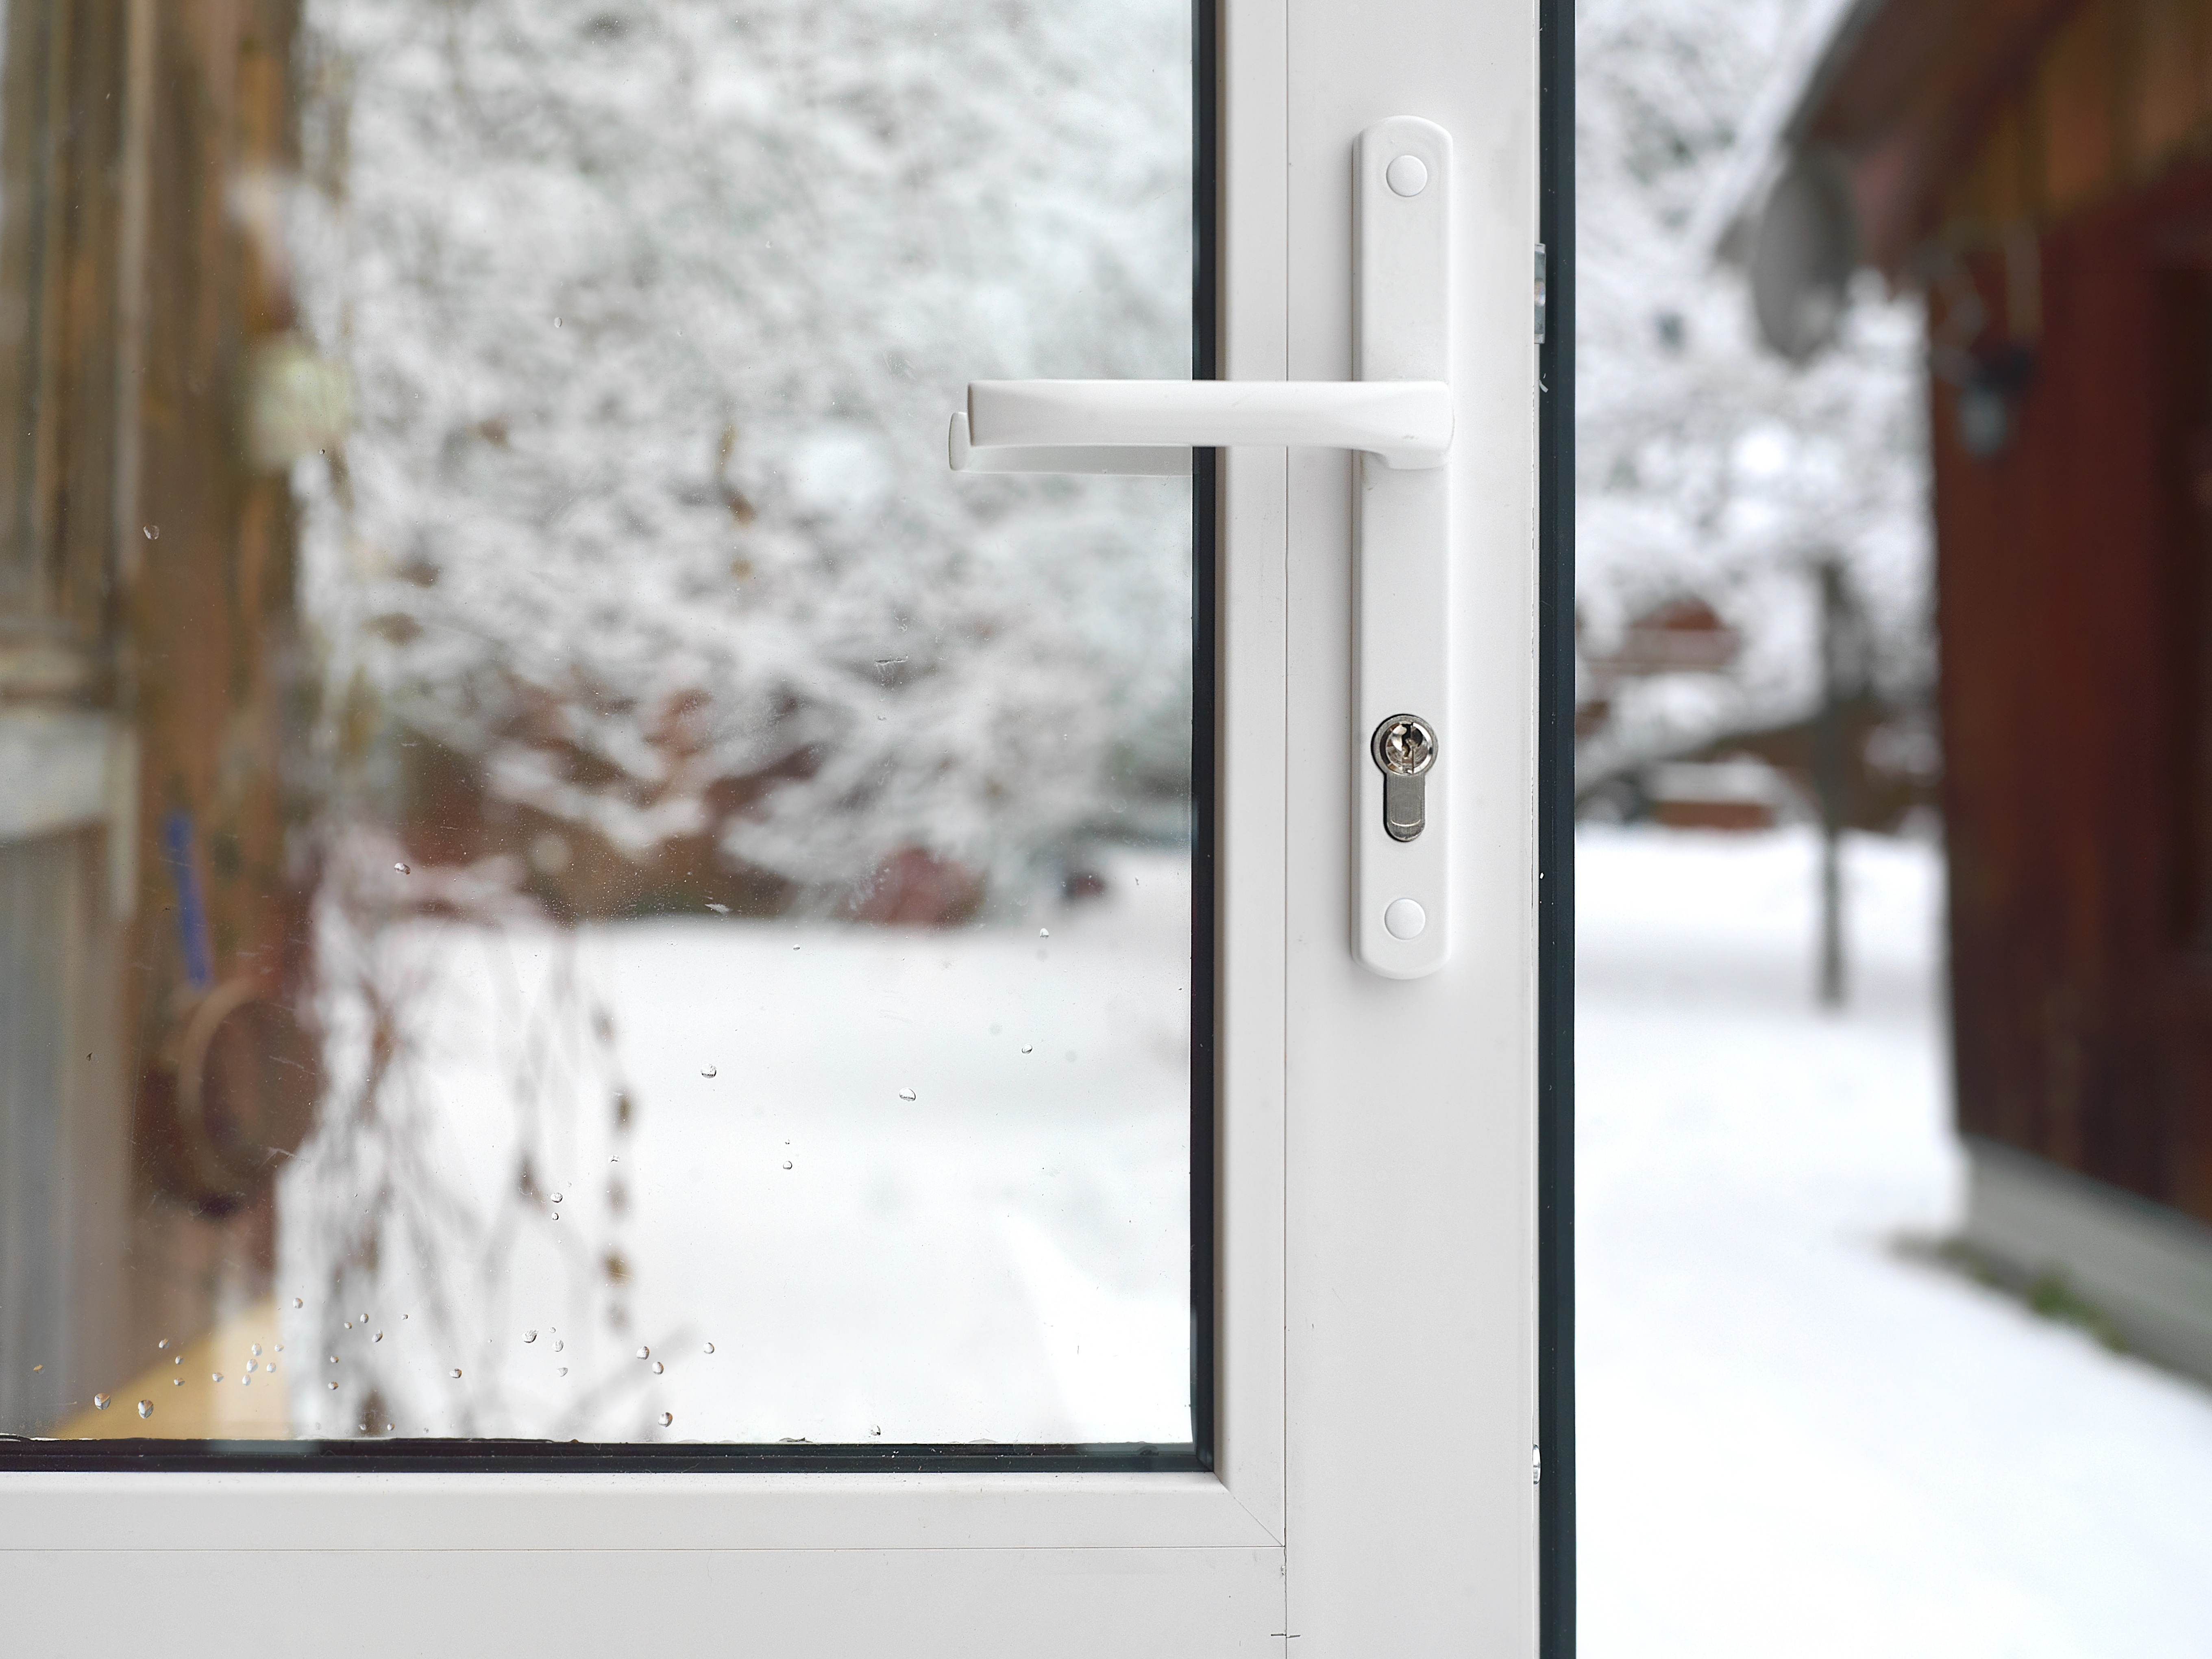 How to Replace Glass Pane on Larson Storm Doors | Hunker